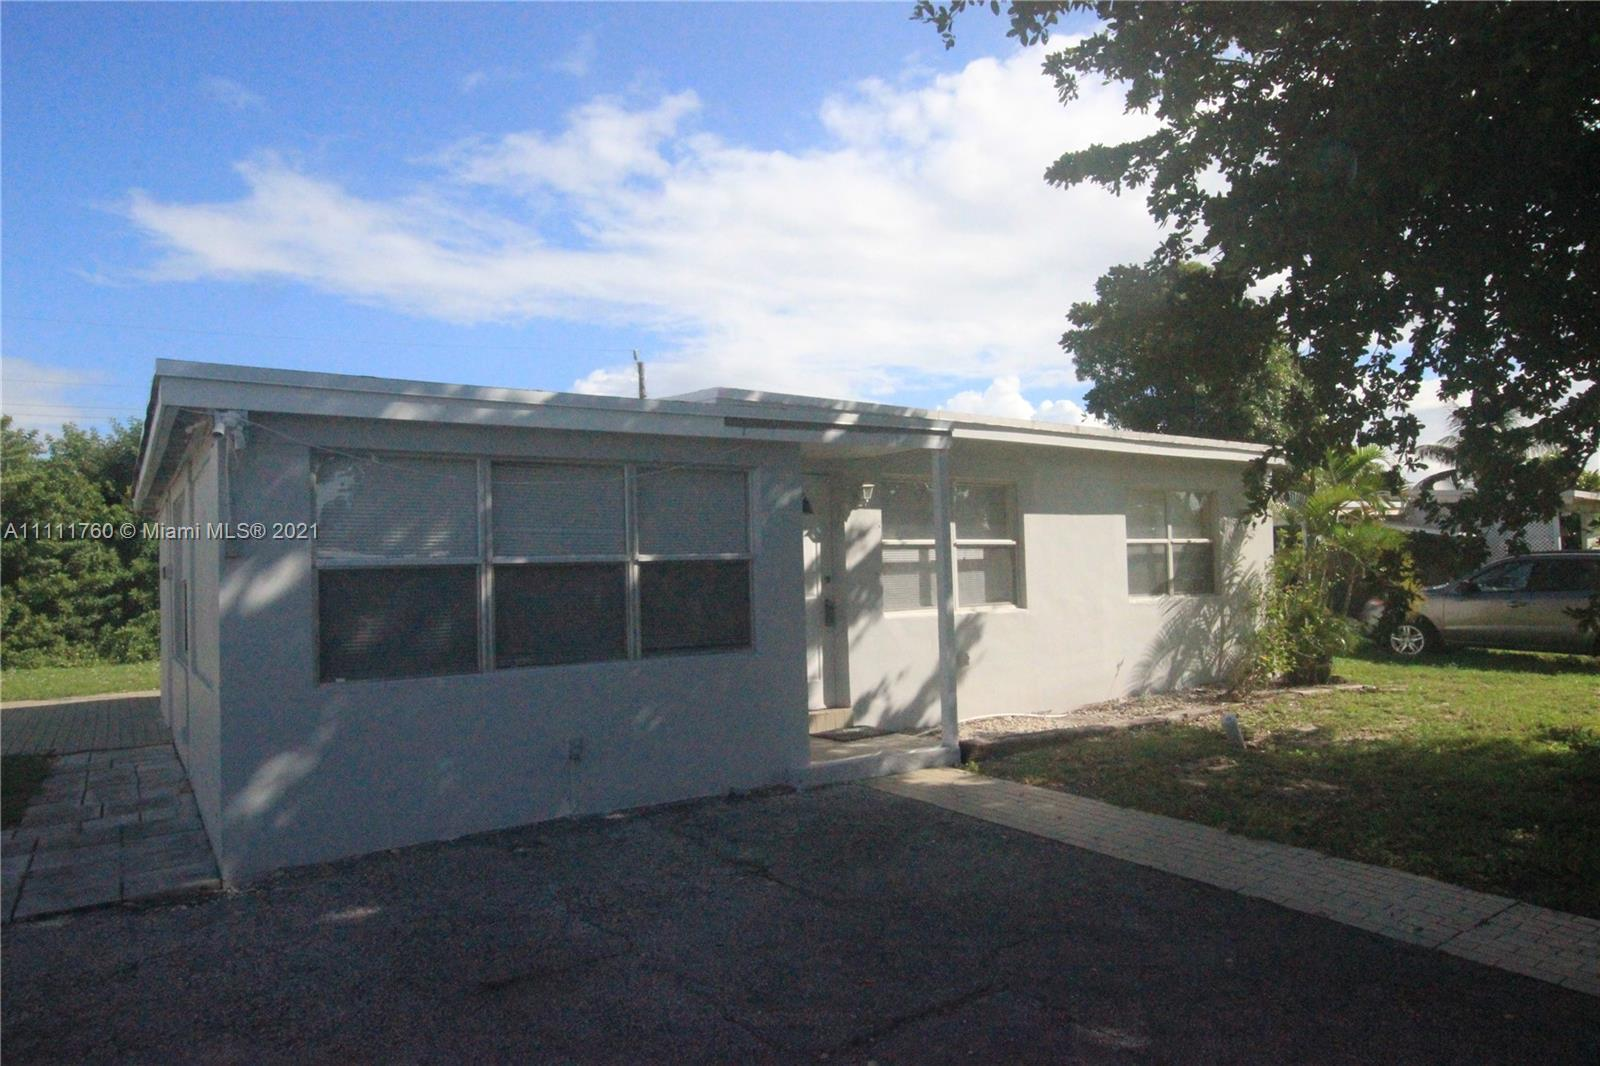 3/1 with Granite countertops, new kitchen cabinets, new flat roof and more.  Great home and priced t